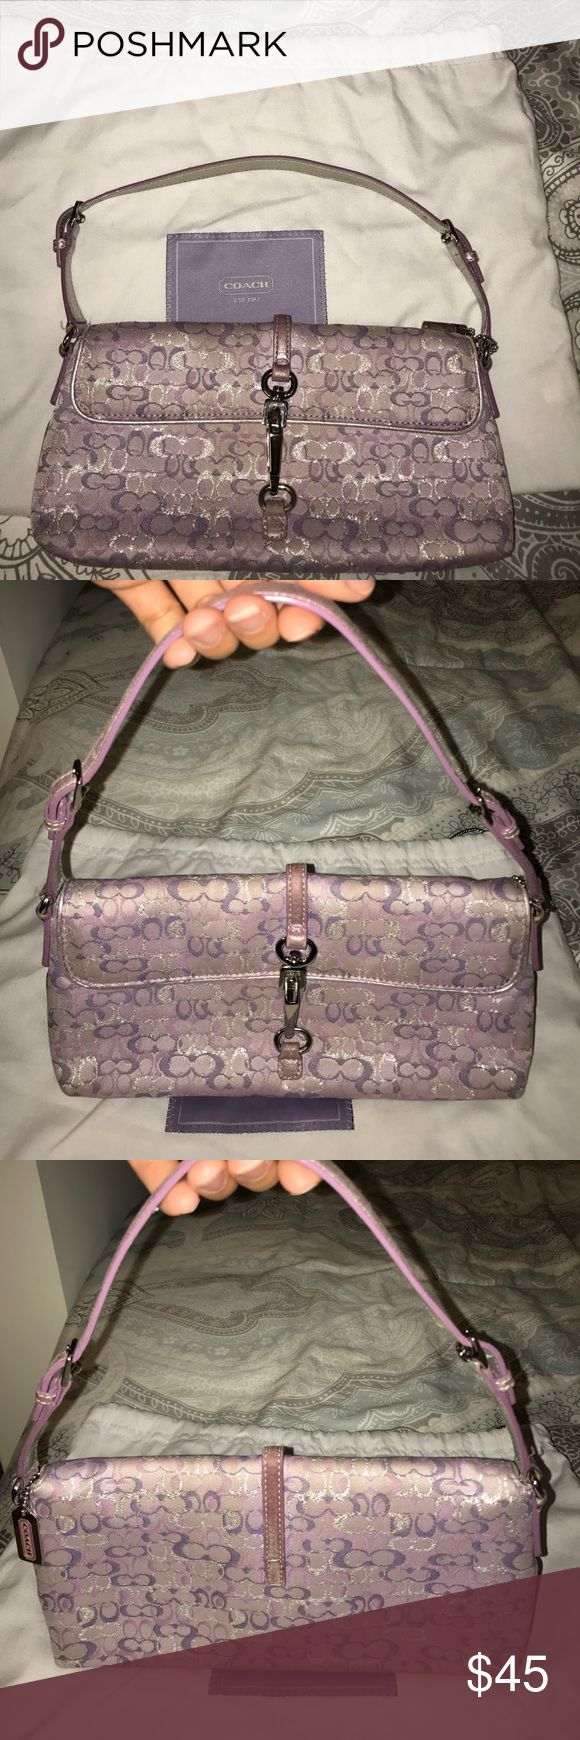 """Coach Clutch Purple canvas coach clutch with purple and silver leather details. Gently used. Strap that holds the clasp is slightly worn. Recently cleaned. 12"""" wide x 5"""" high. 11"""" high with strap fully extended. Coach Bags Clutches & Wristlets"""